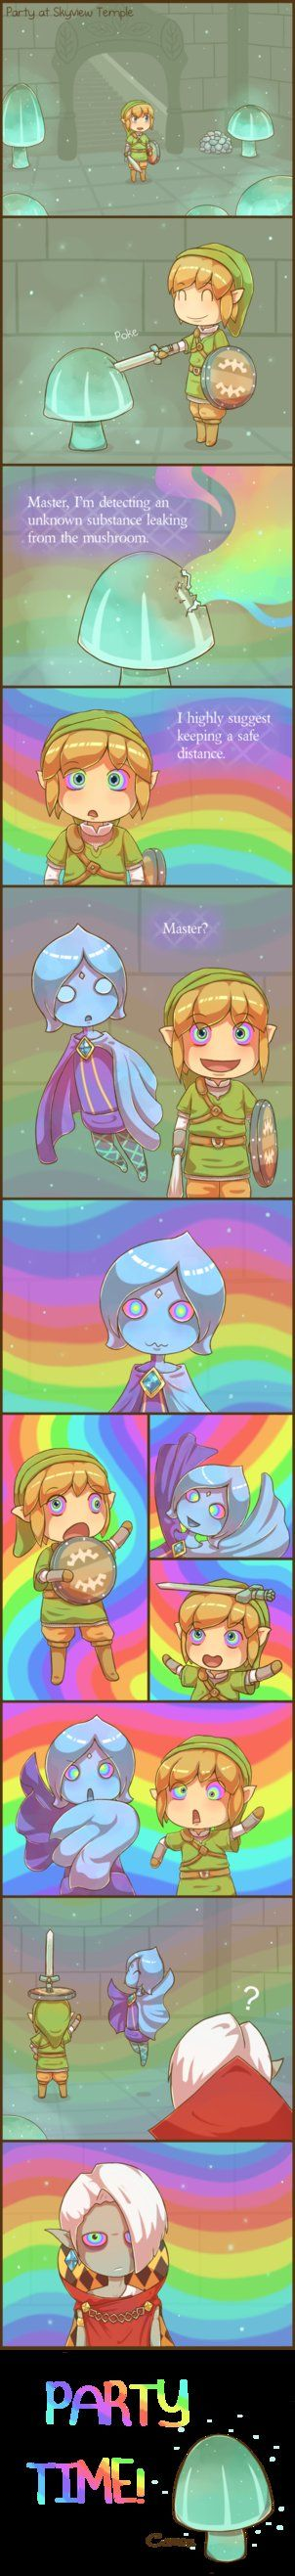 So, this is silly. Just what kinds of crazy they'll be up to in the end, who knows. I'm sure Ghirahim knows how to party though. I'll leave that to your imagination I think. More Zelda art Zelda &#...